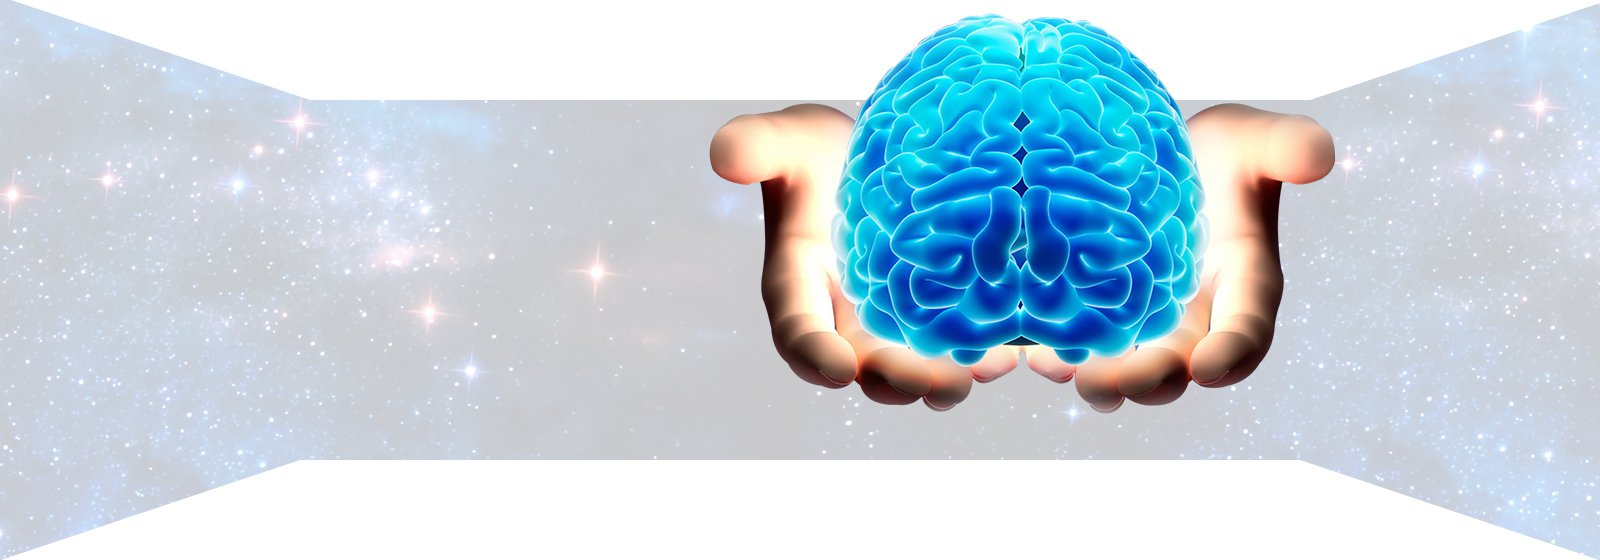 A Beginners Guide To Nootropics - Nootropic.org